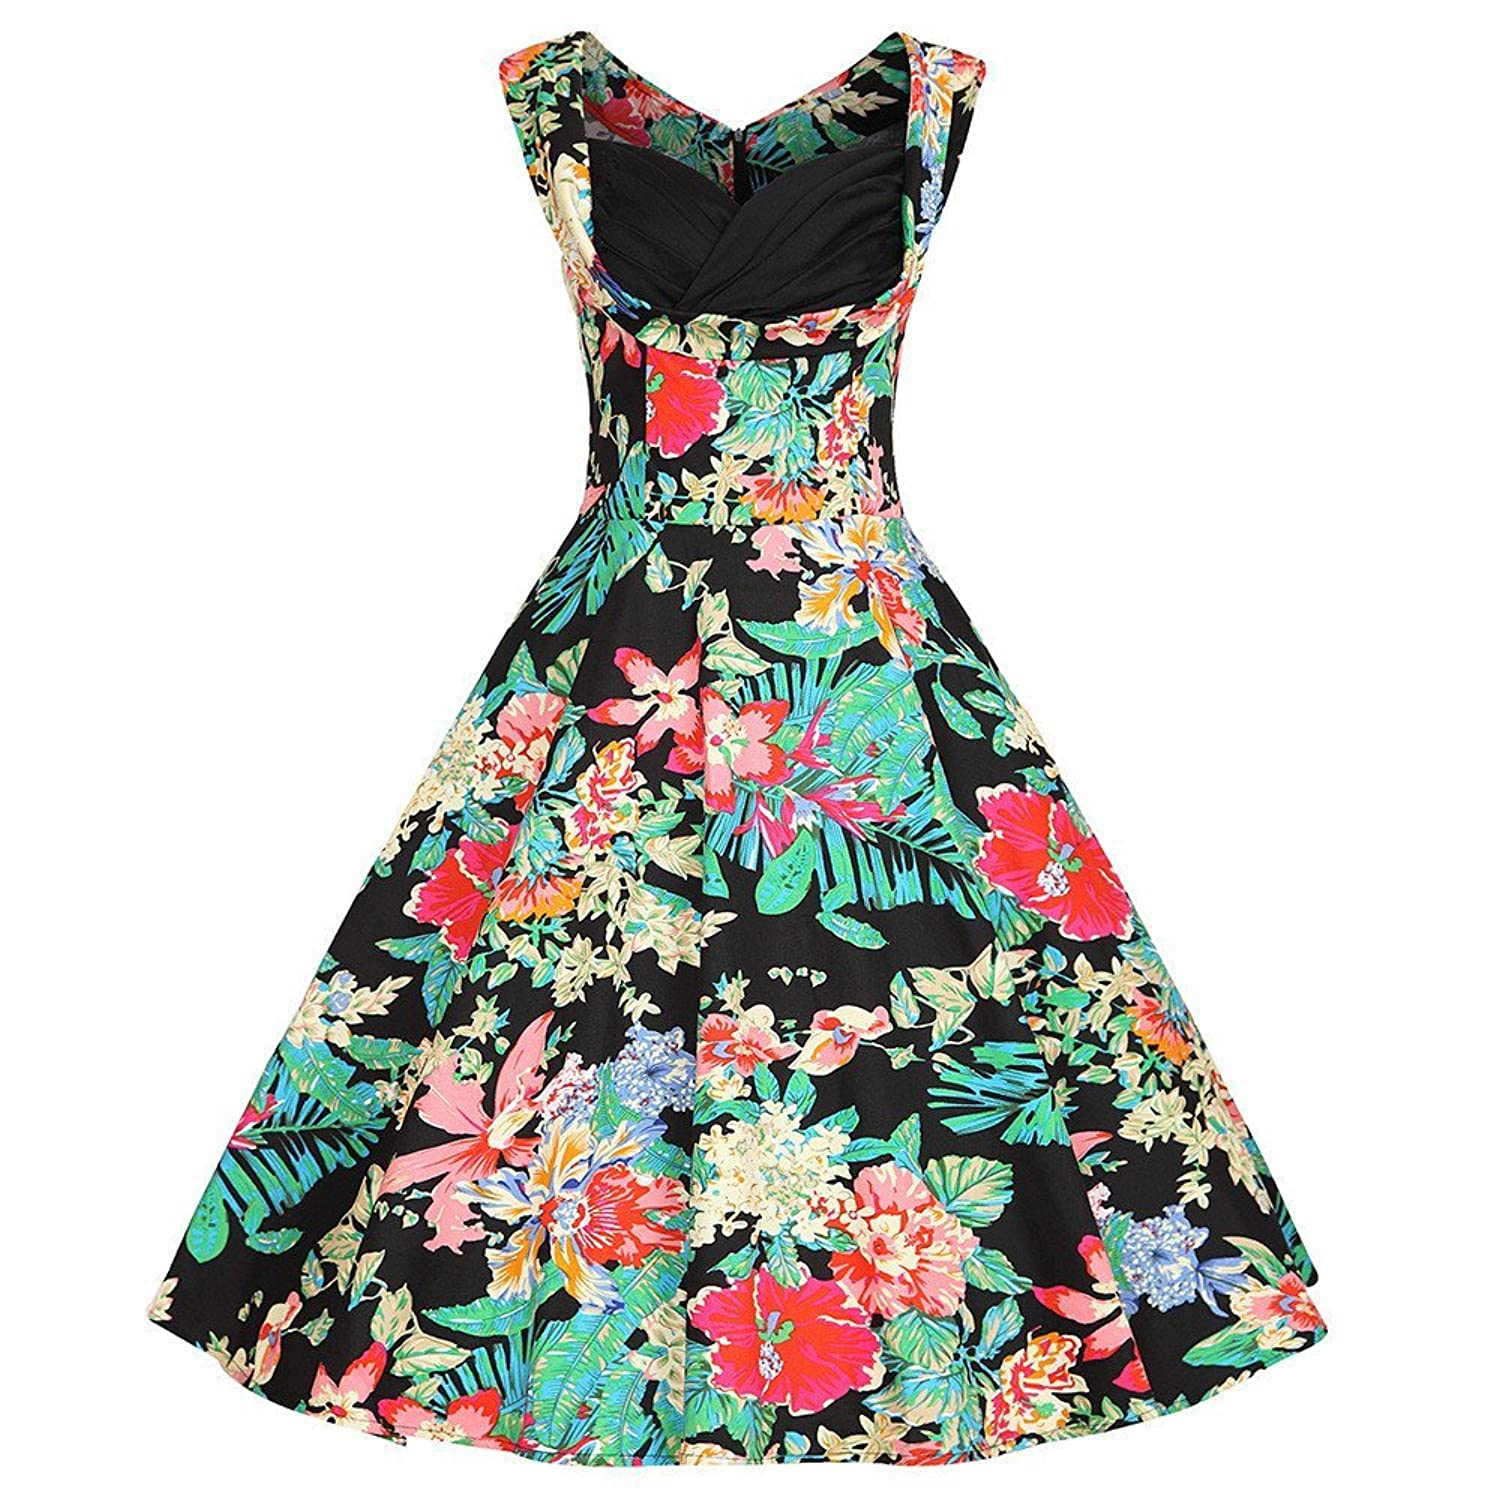 Women's 1950s V Neck Vintage Retro Rockabilly Party Cocktail Swing Dresses(YAZACO)